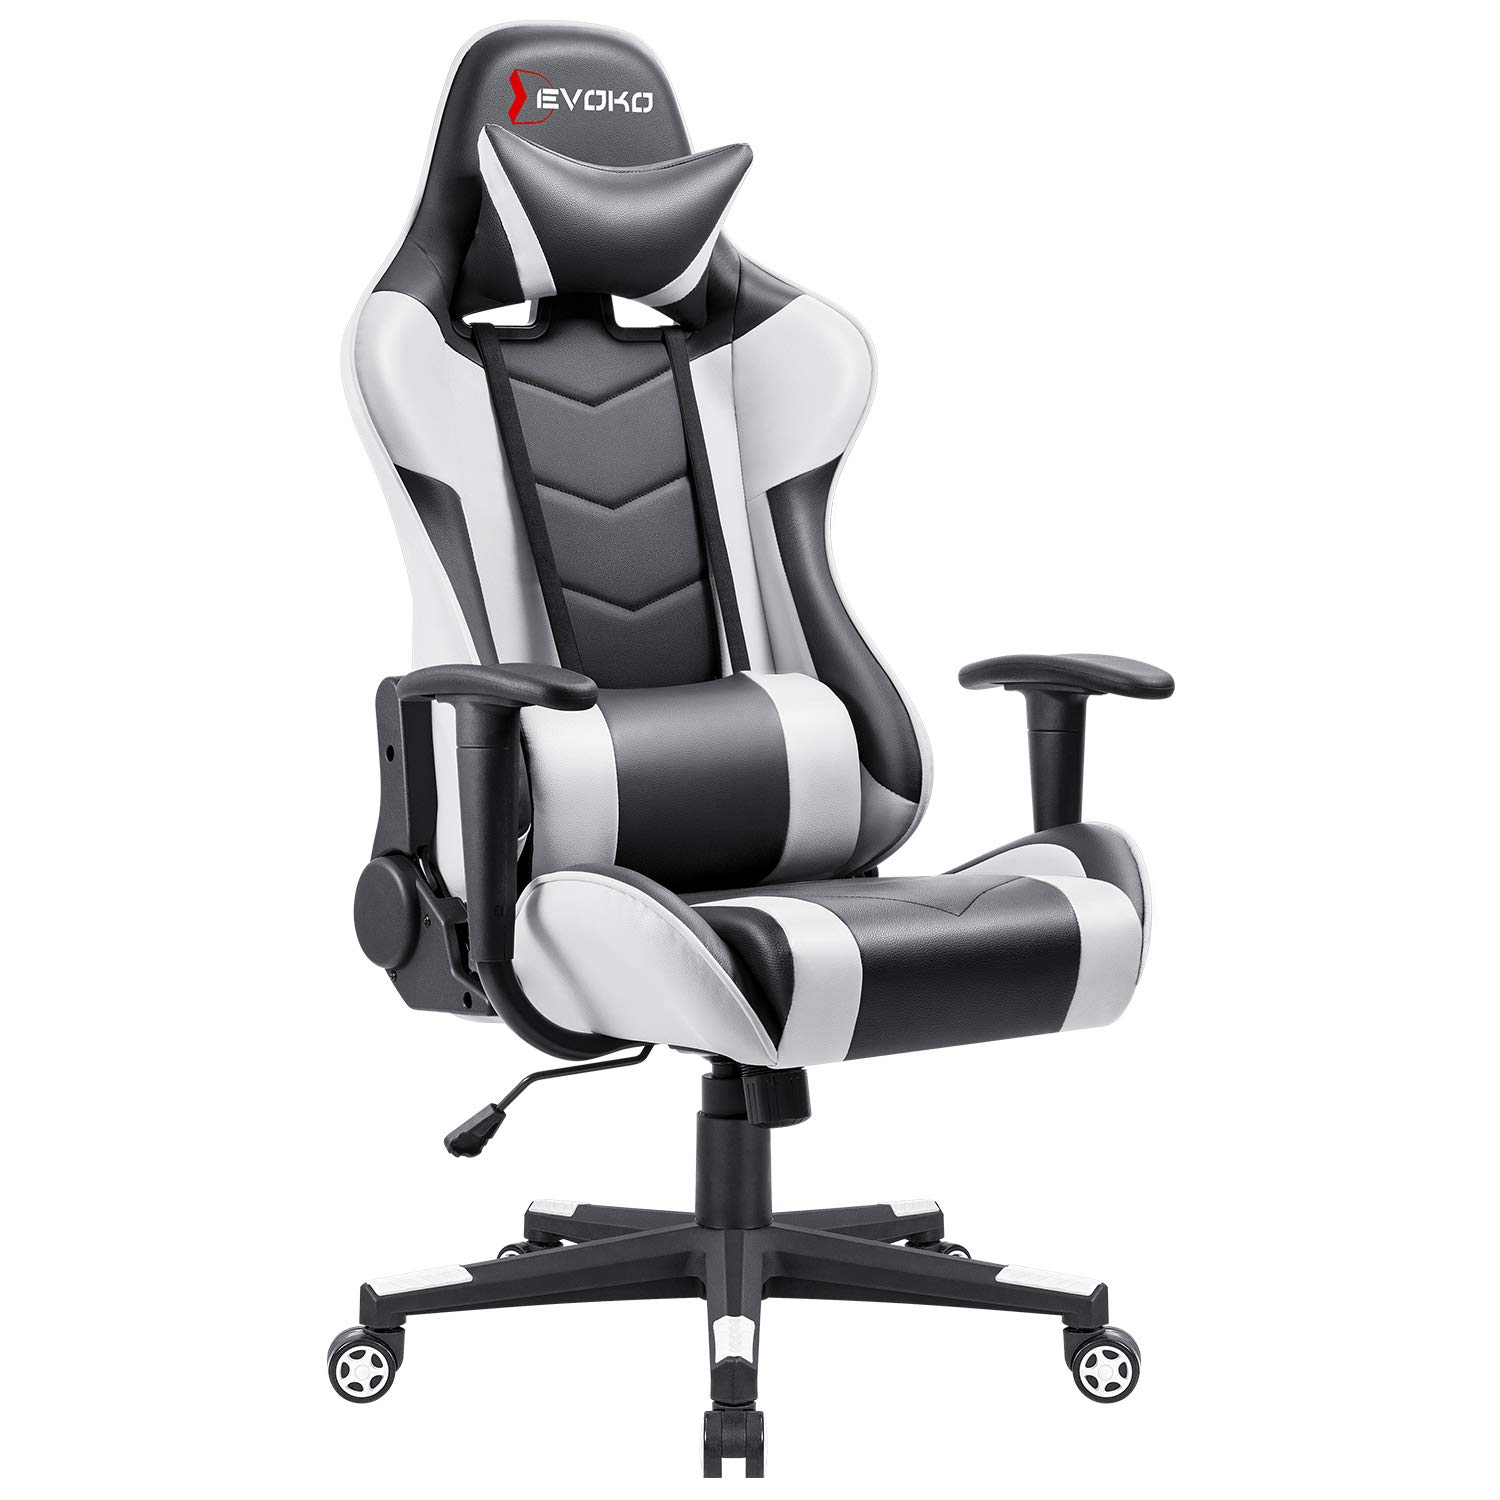 Gaming Chair Racing Style High Back PU Computer Chair Ergonomic Adjustable Height Desk Chair Recliner Swivel Executive Office Chair with Headrest and Lumbar Support White